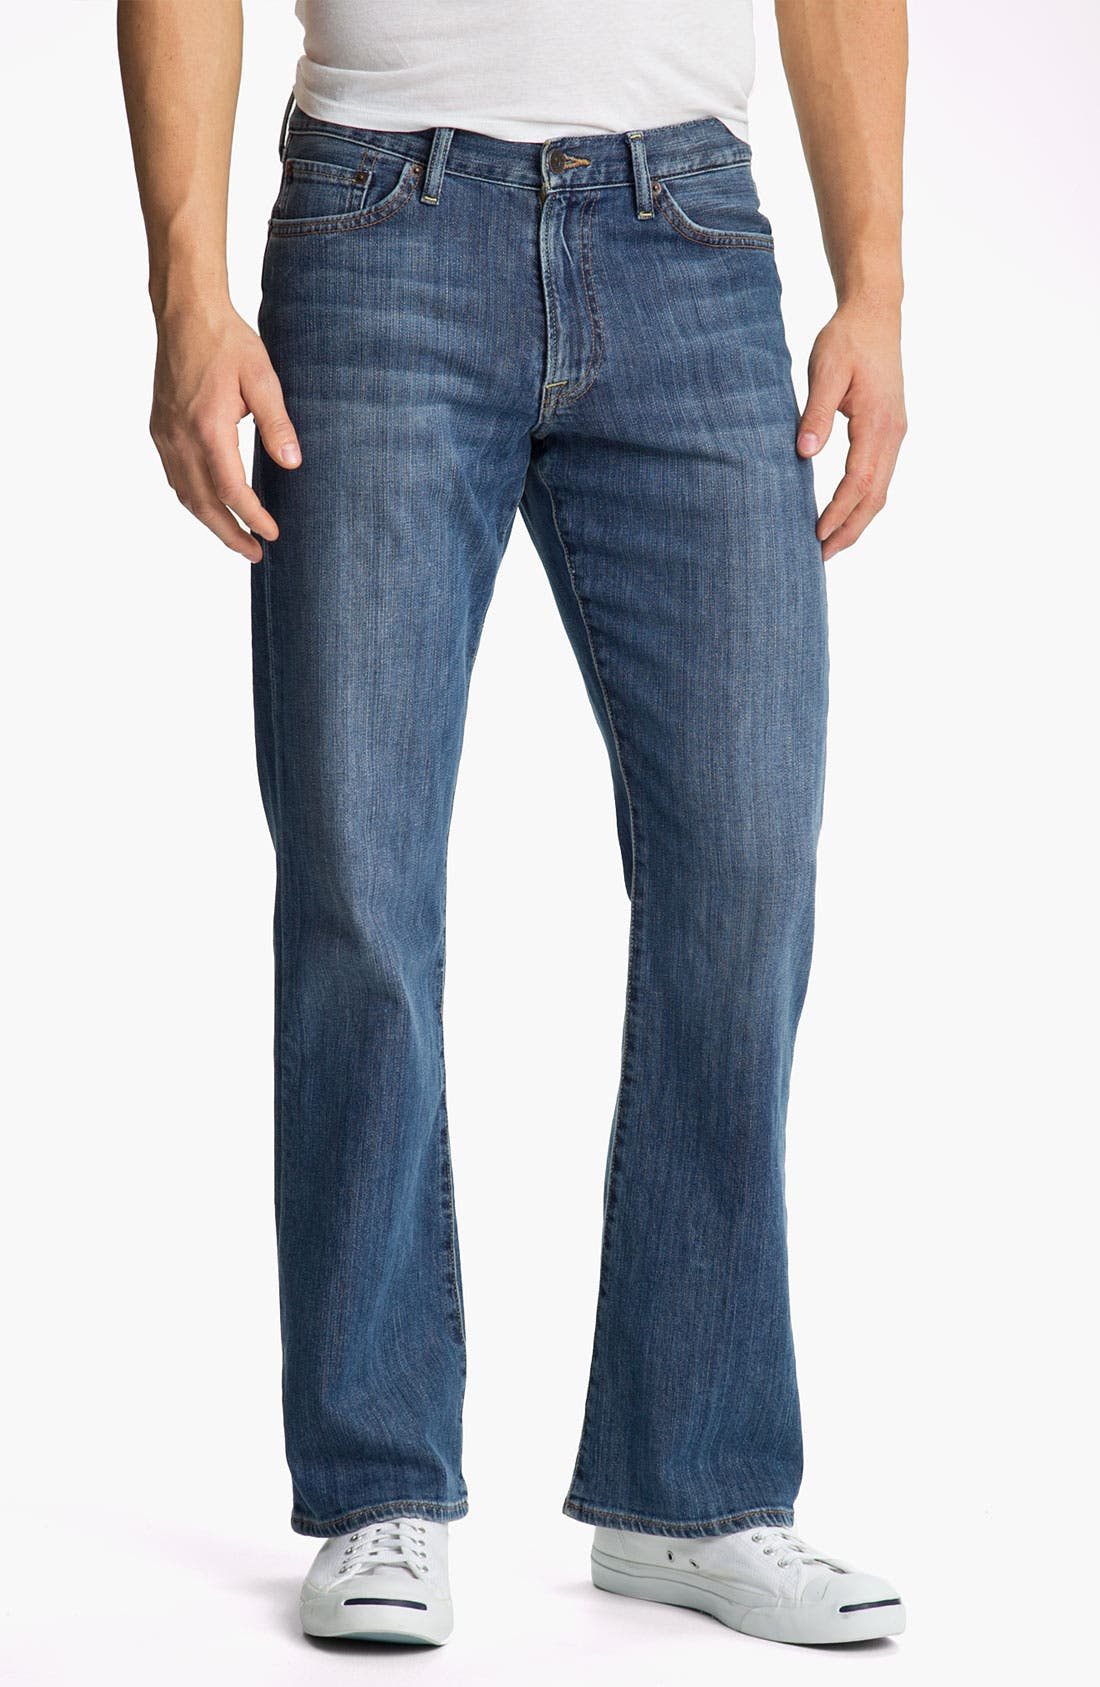 Alternate Image 1 Selected - Lucky Brand '367 Vintage' Bootcut Jeans (Nugget)